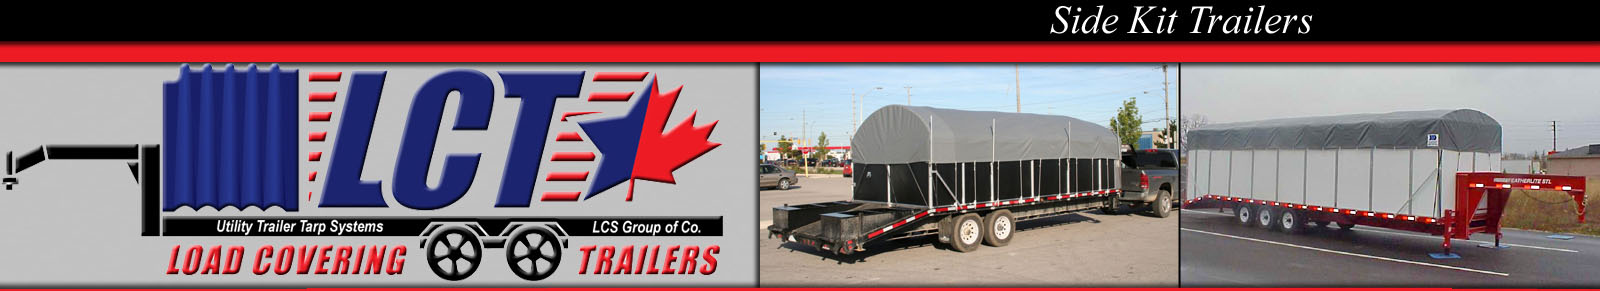 Side Kit Trailers